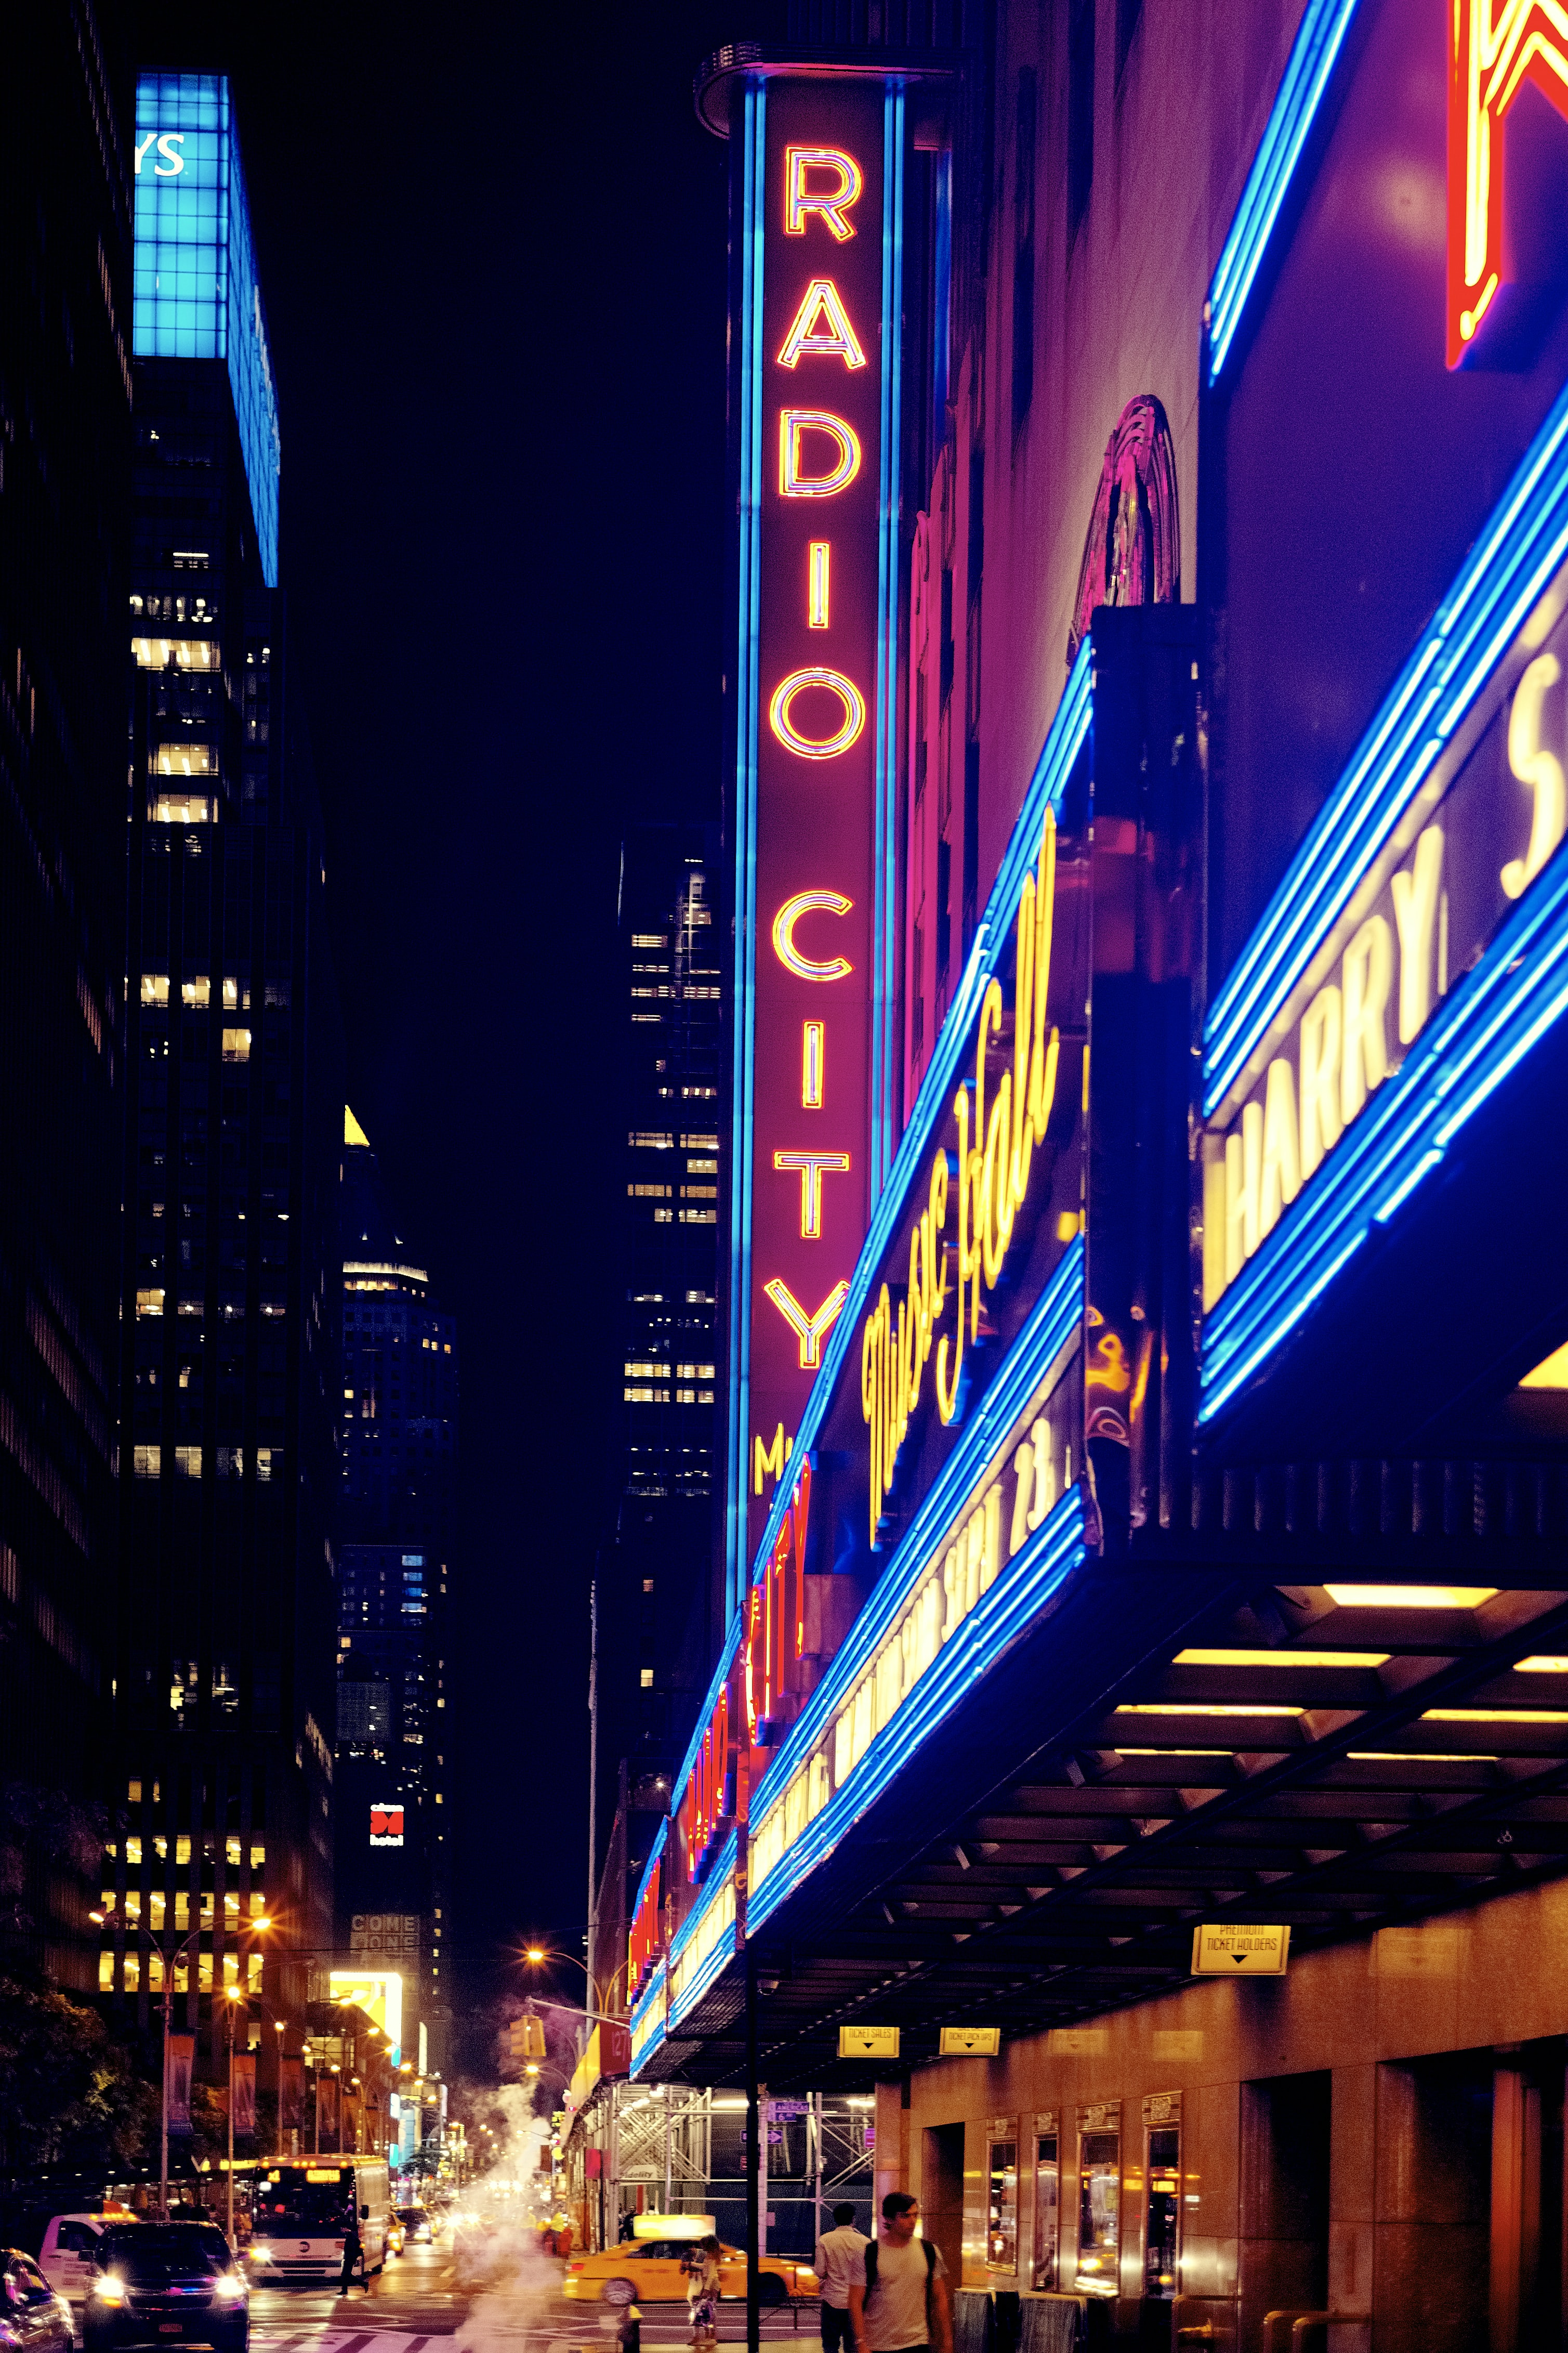 Vertical and horizontal neons at the entrance to Radio City Music Hall at night